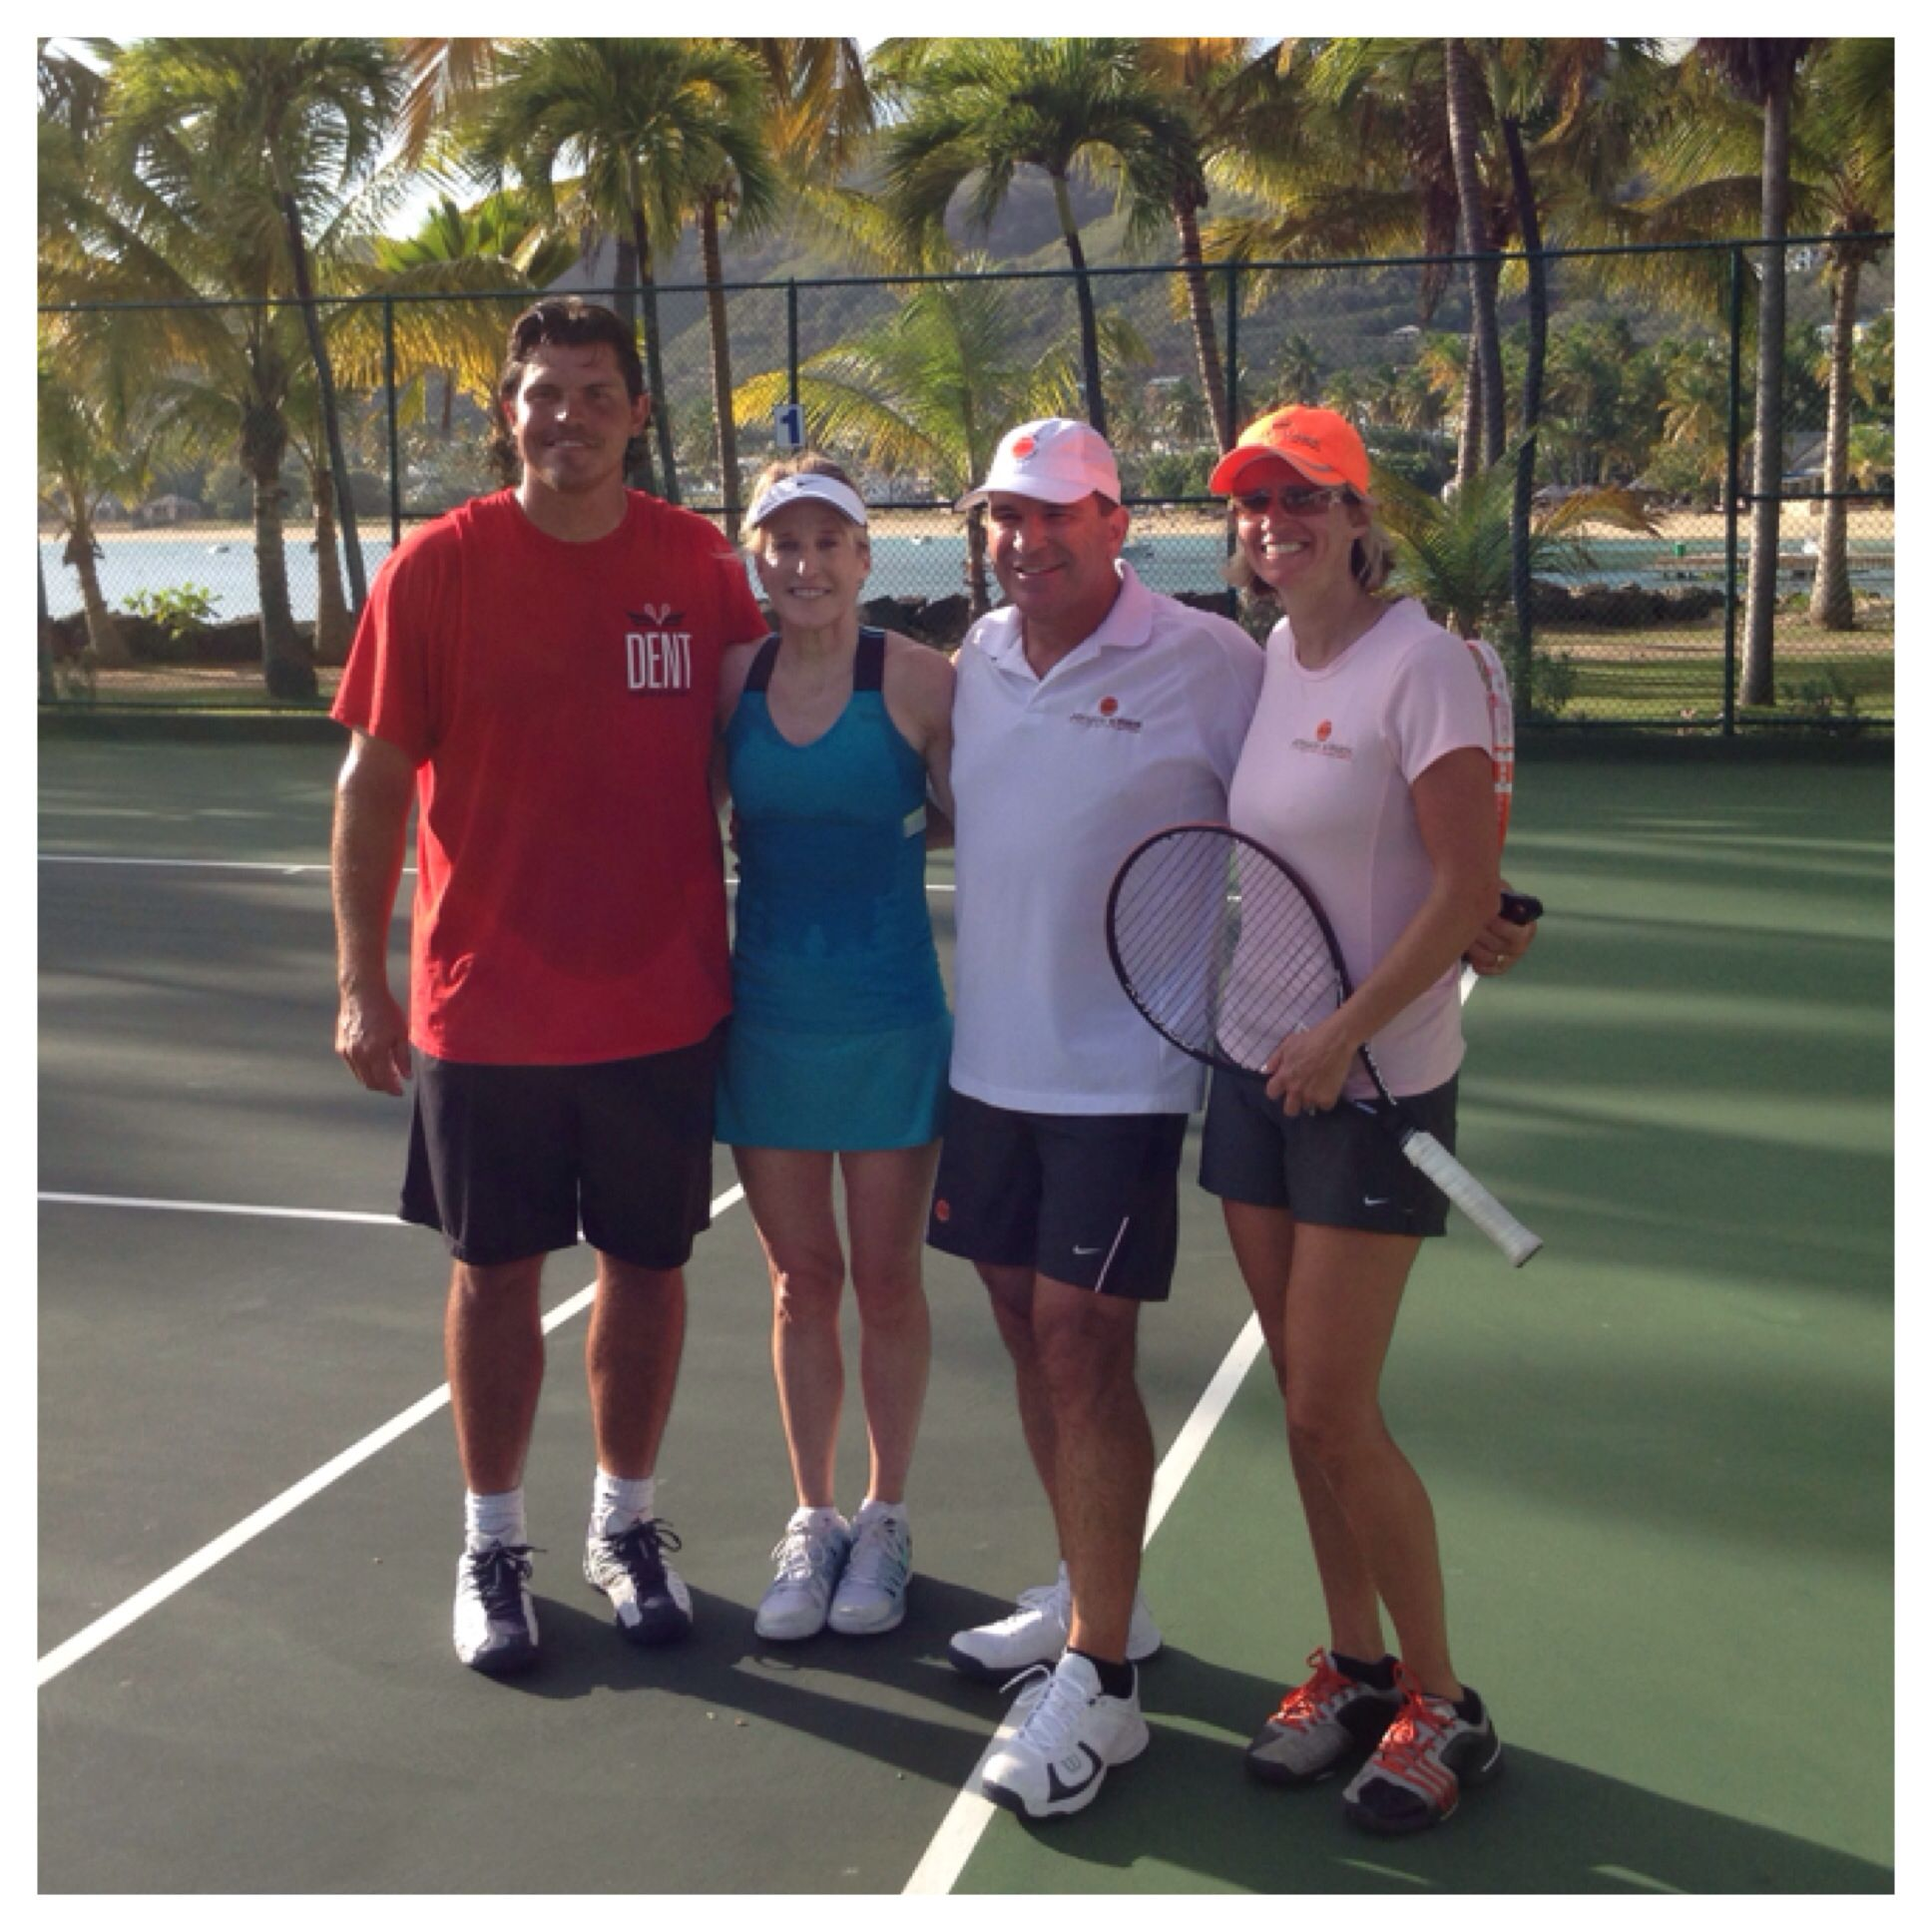 Johan Kriek And His Wife Daga Teamed Up Today For The First Time In Years To Play An Exhibition Together Against Tracy Tracy Austin Jimmy Connors John Mcenroe